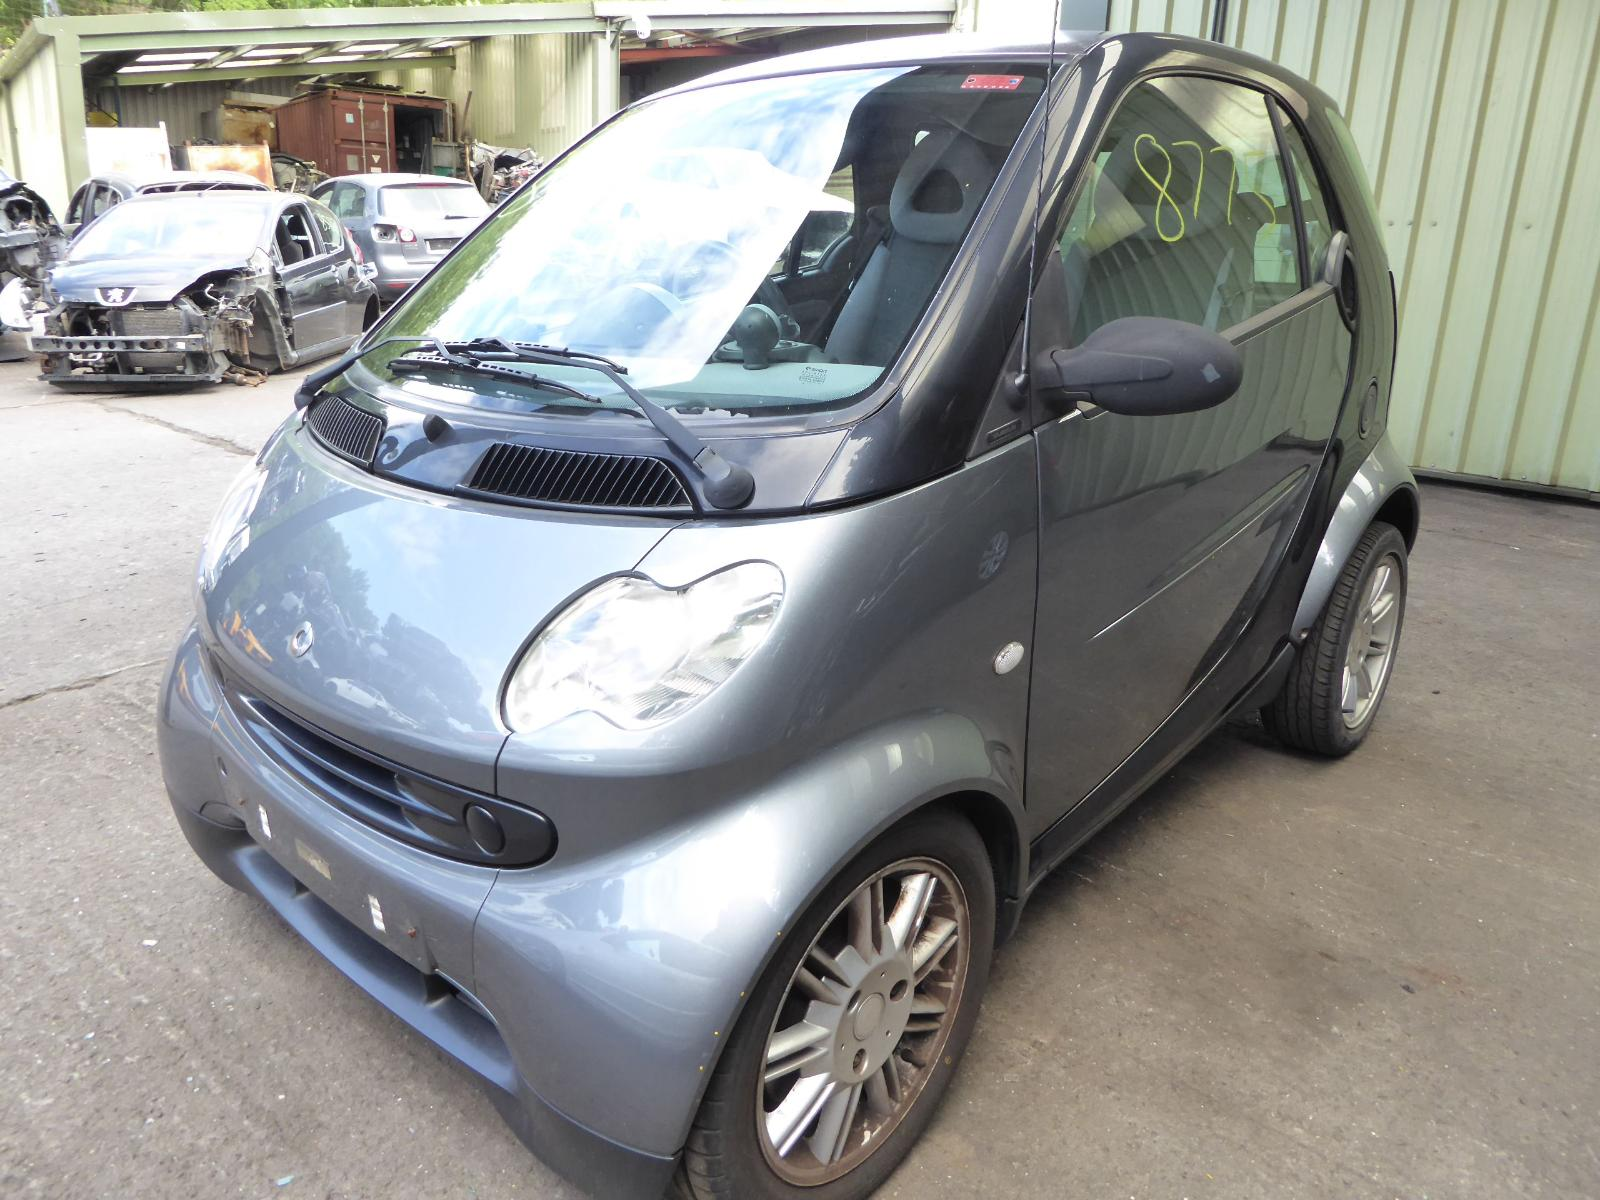 Image for a SMART FORTWO; SMARTCAR 2005 2 Door Coupe